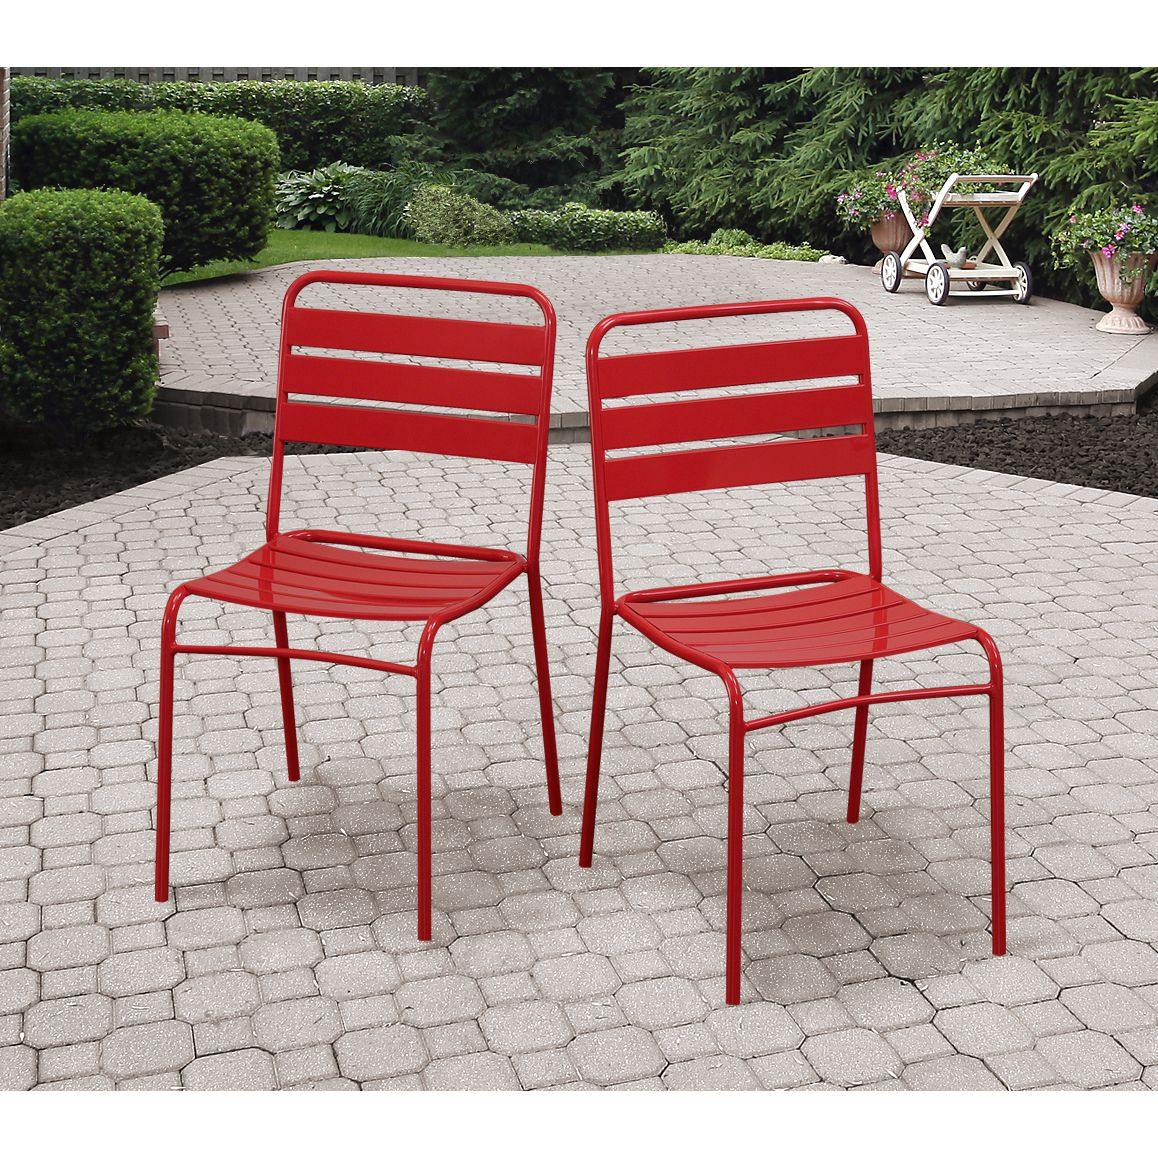 stackable chairs for less office lounge chair and ottoman give your outdoor area a fresh appeal with these this set of four